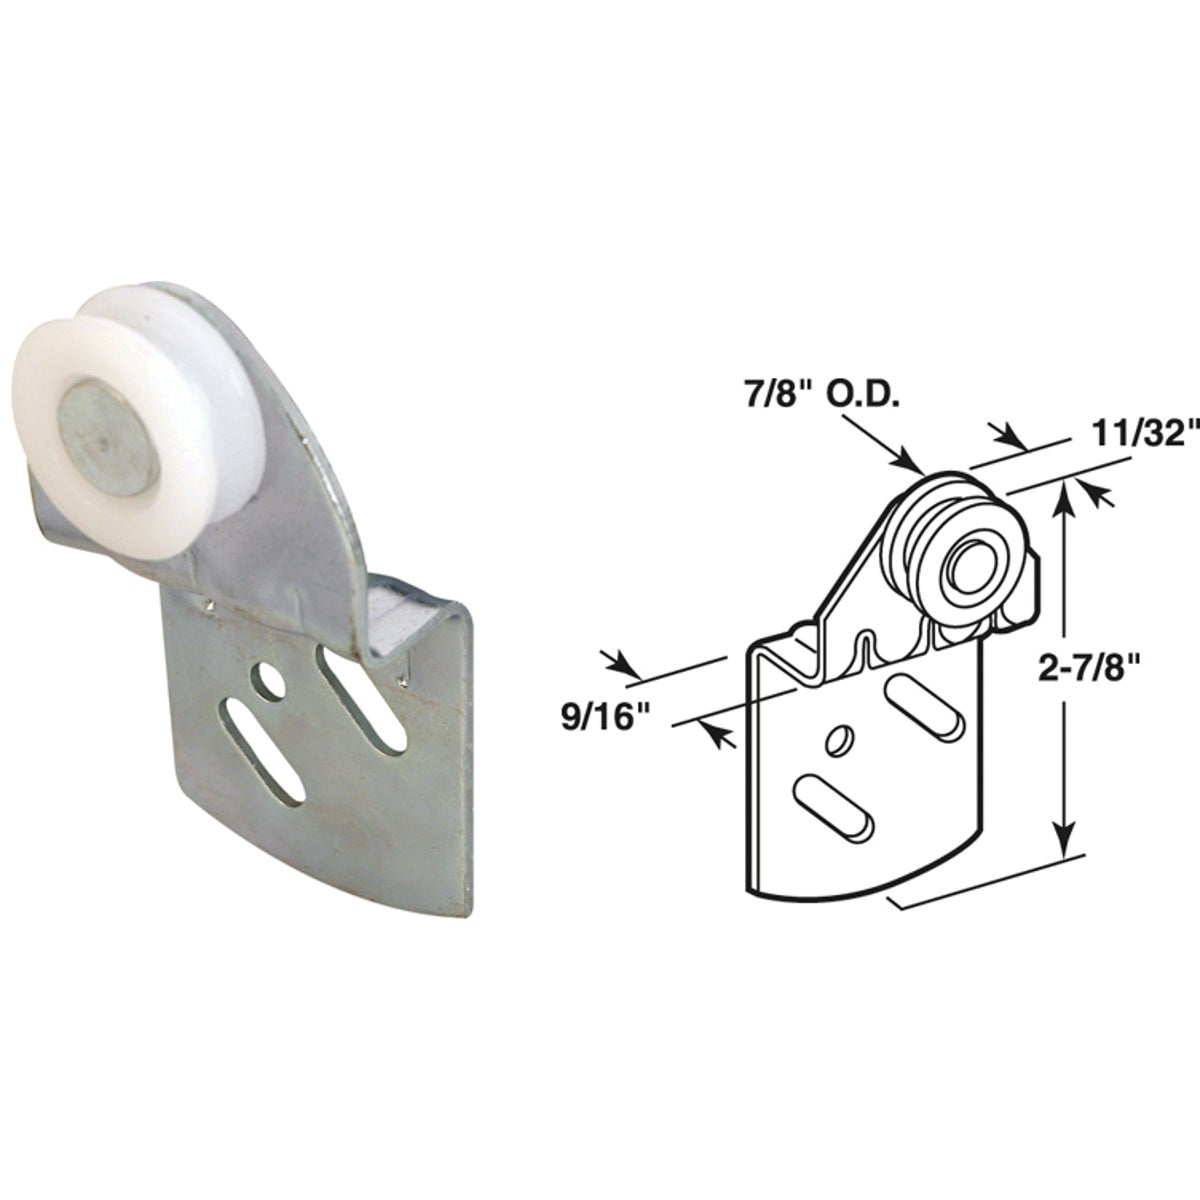 BACK BI-PASS DOOR ROLLER - 161999 by Prime Line Products